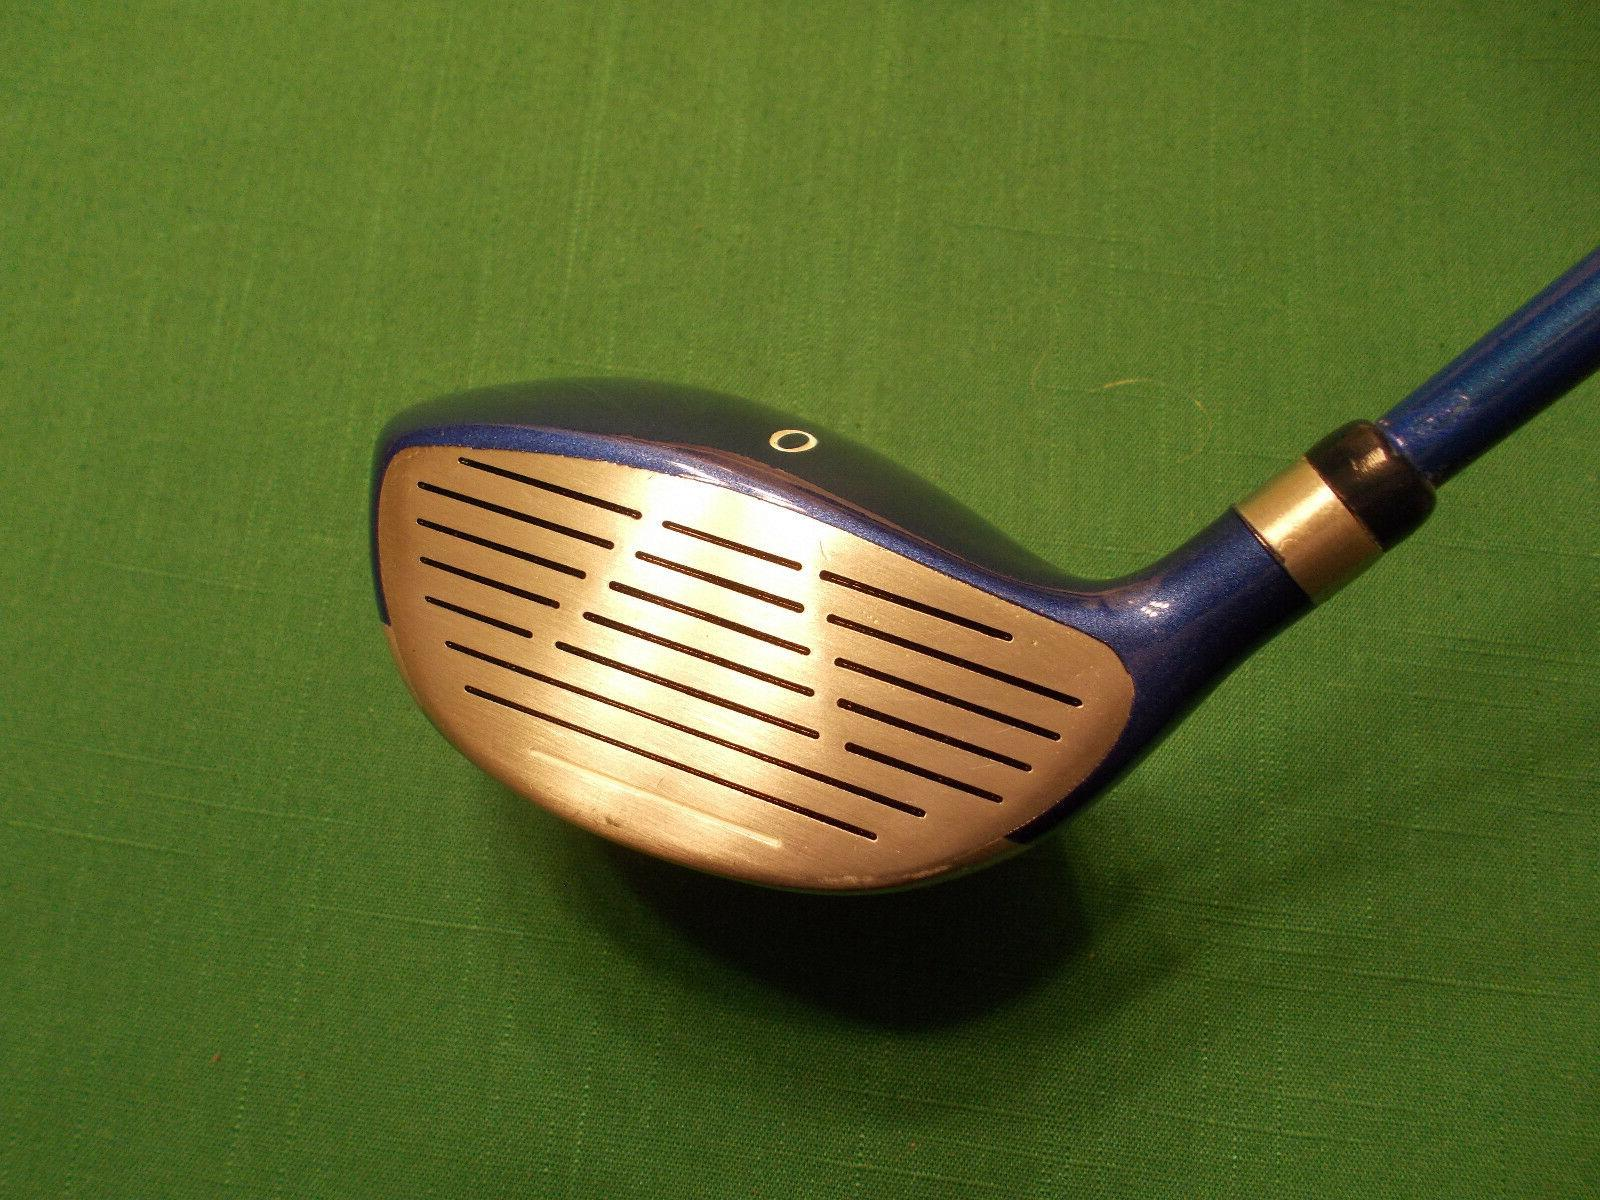 jr tour 3 fairway driver with headcover